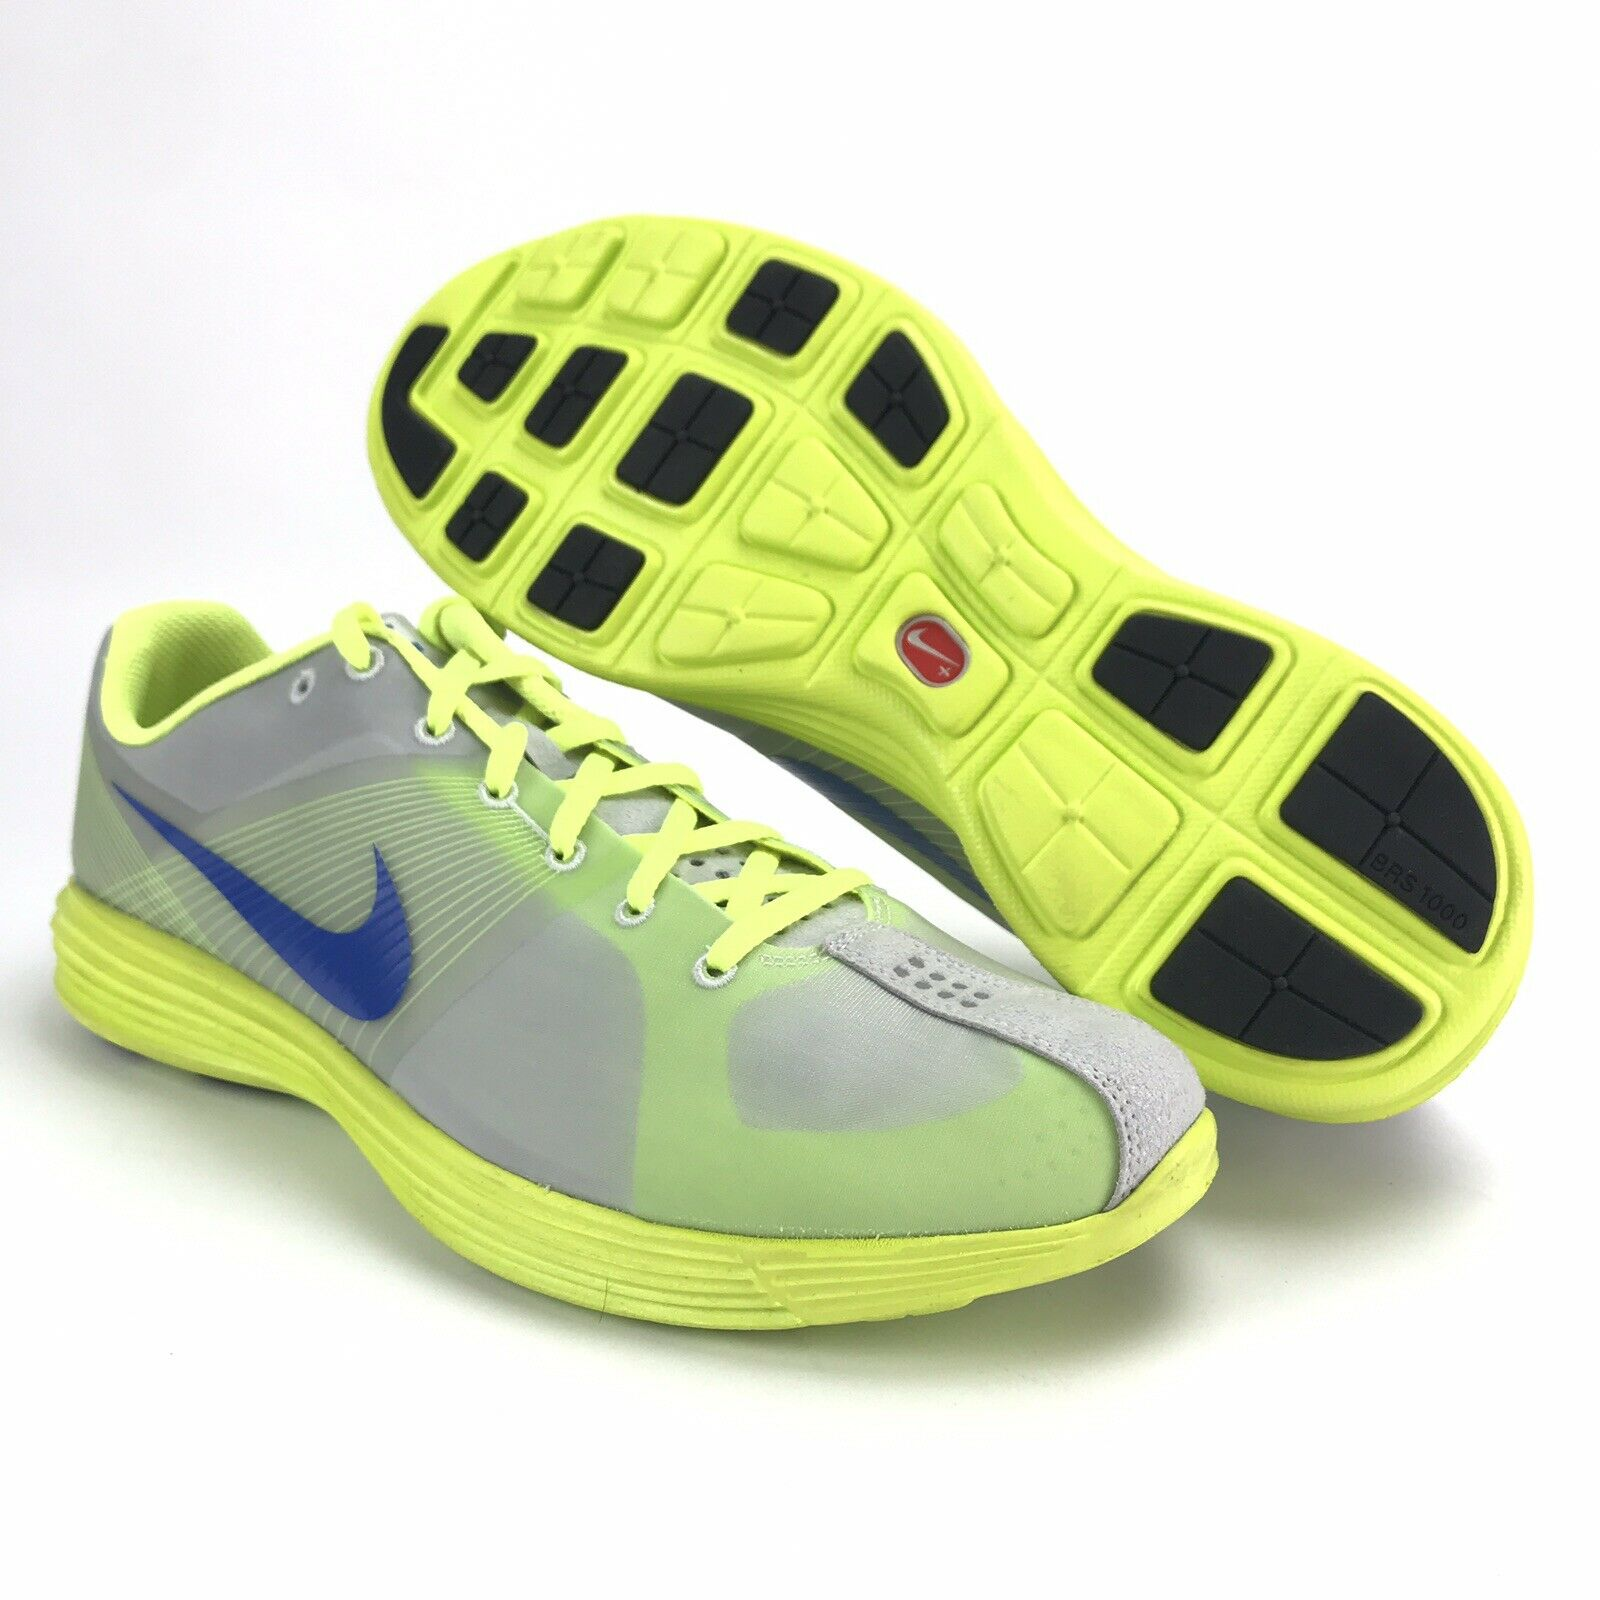 Nike Mens 2010 LunarRacer + Pure Platinum Electric verde Running zapatos Talla 12